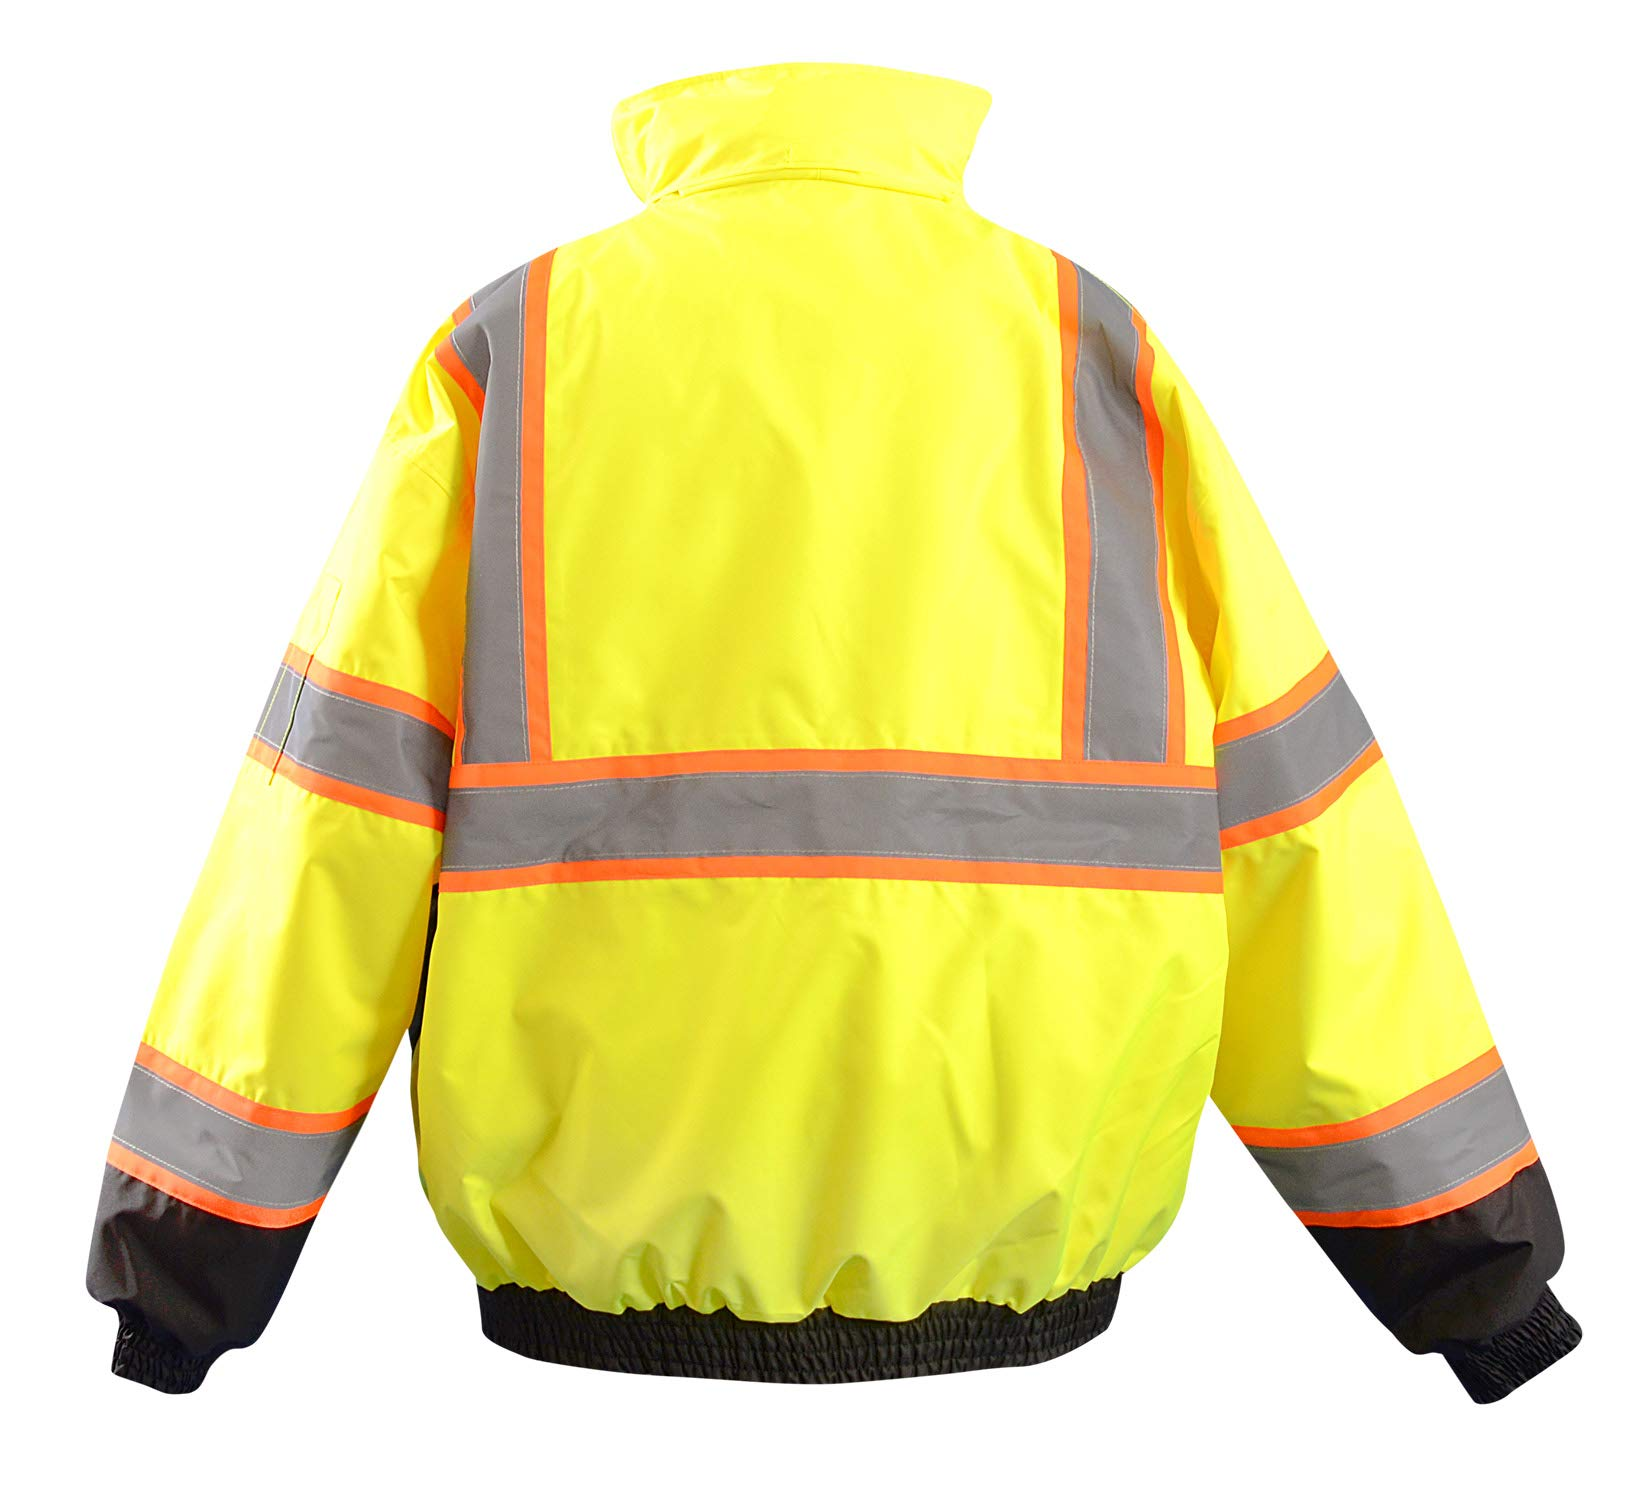 OccuNomix LUX-350-JB2-YS High Visibility 2-in-1 Quilted Two-Tone Black Bottom X Back Bomber Jacket with Zip-Out Quilted Liner and 7 Pockets, Class 3, 100% ANSI Polyester, Small, Yellow by OccuNomix (Image #2)